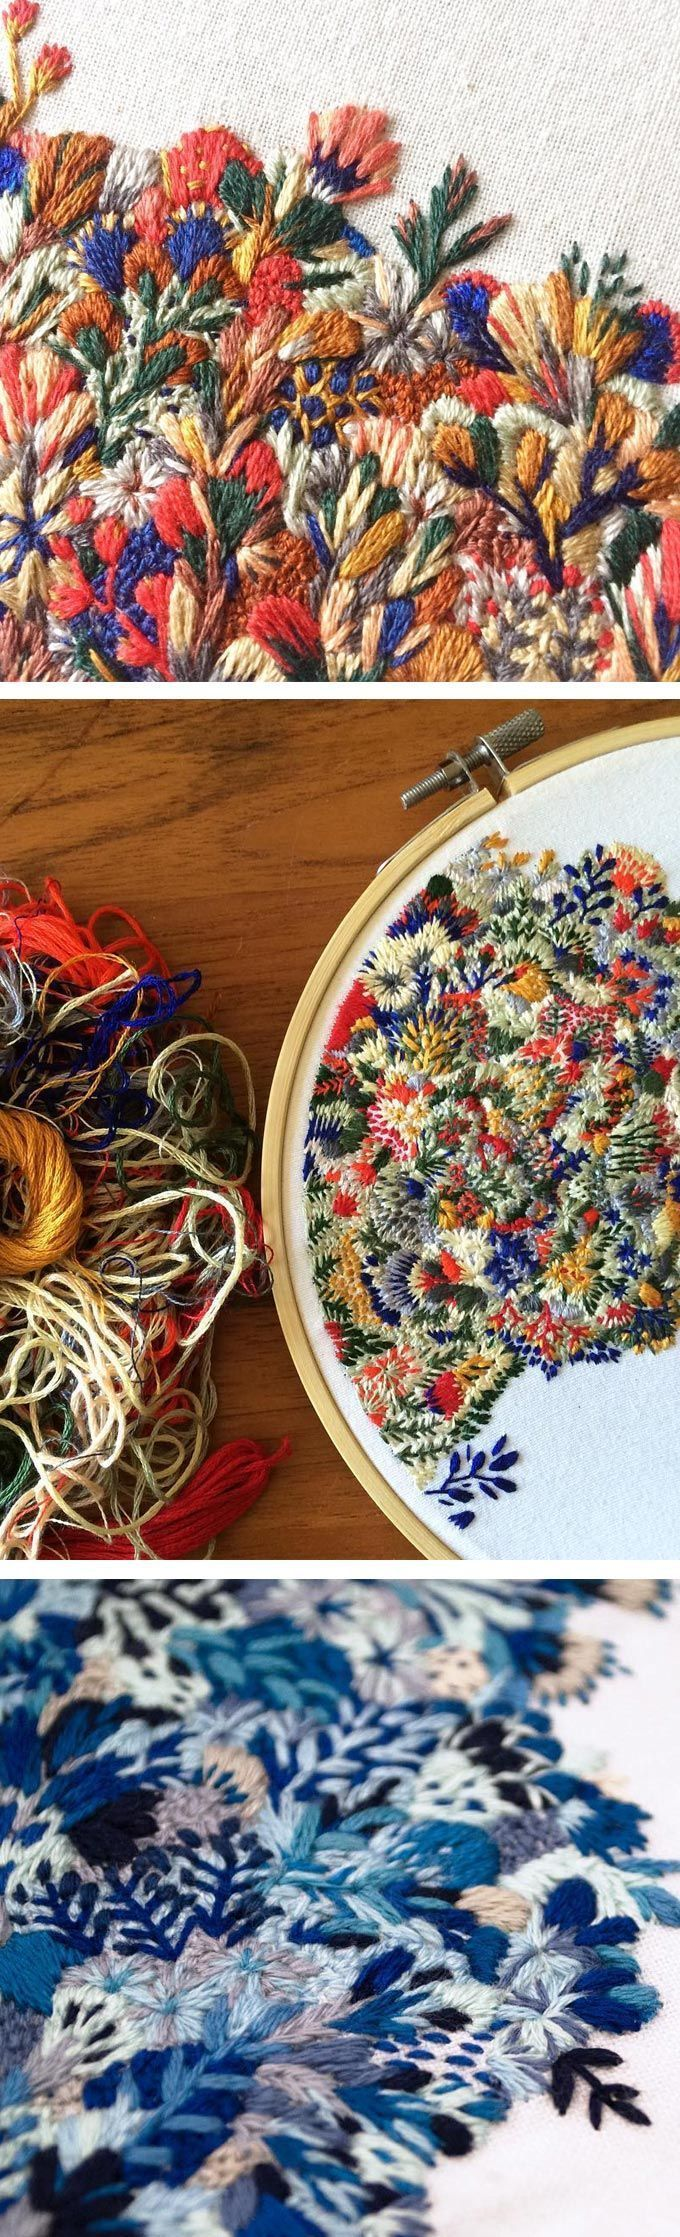 Photo of Slow Stitch Sophie's Embroideries Resembling Landscapes of Wildflowers